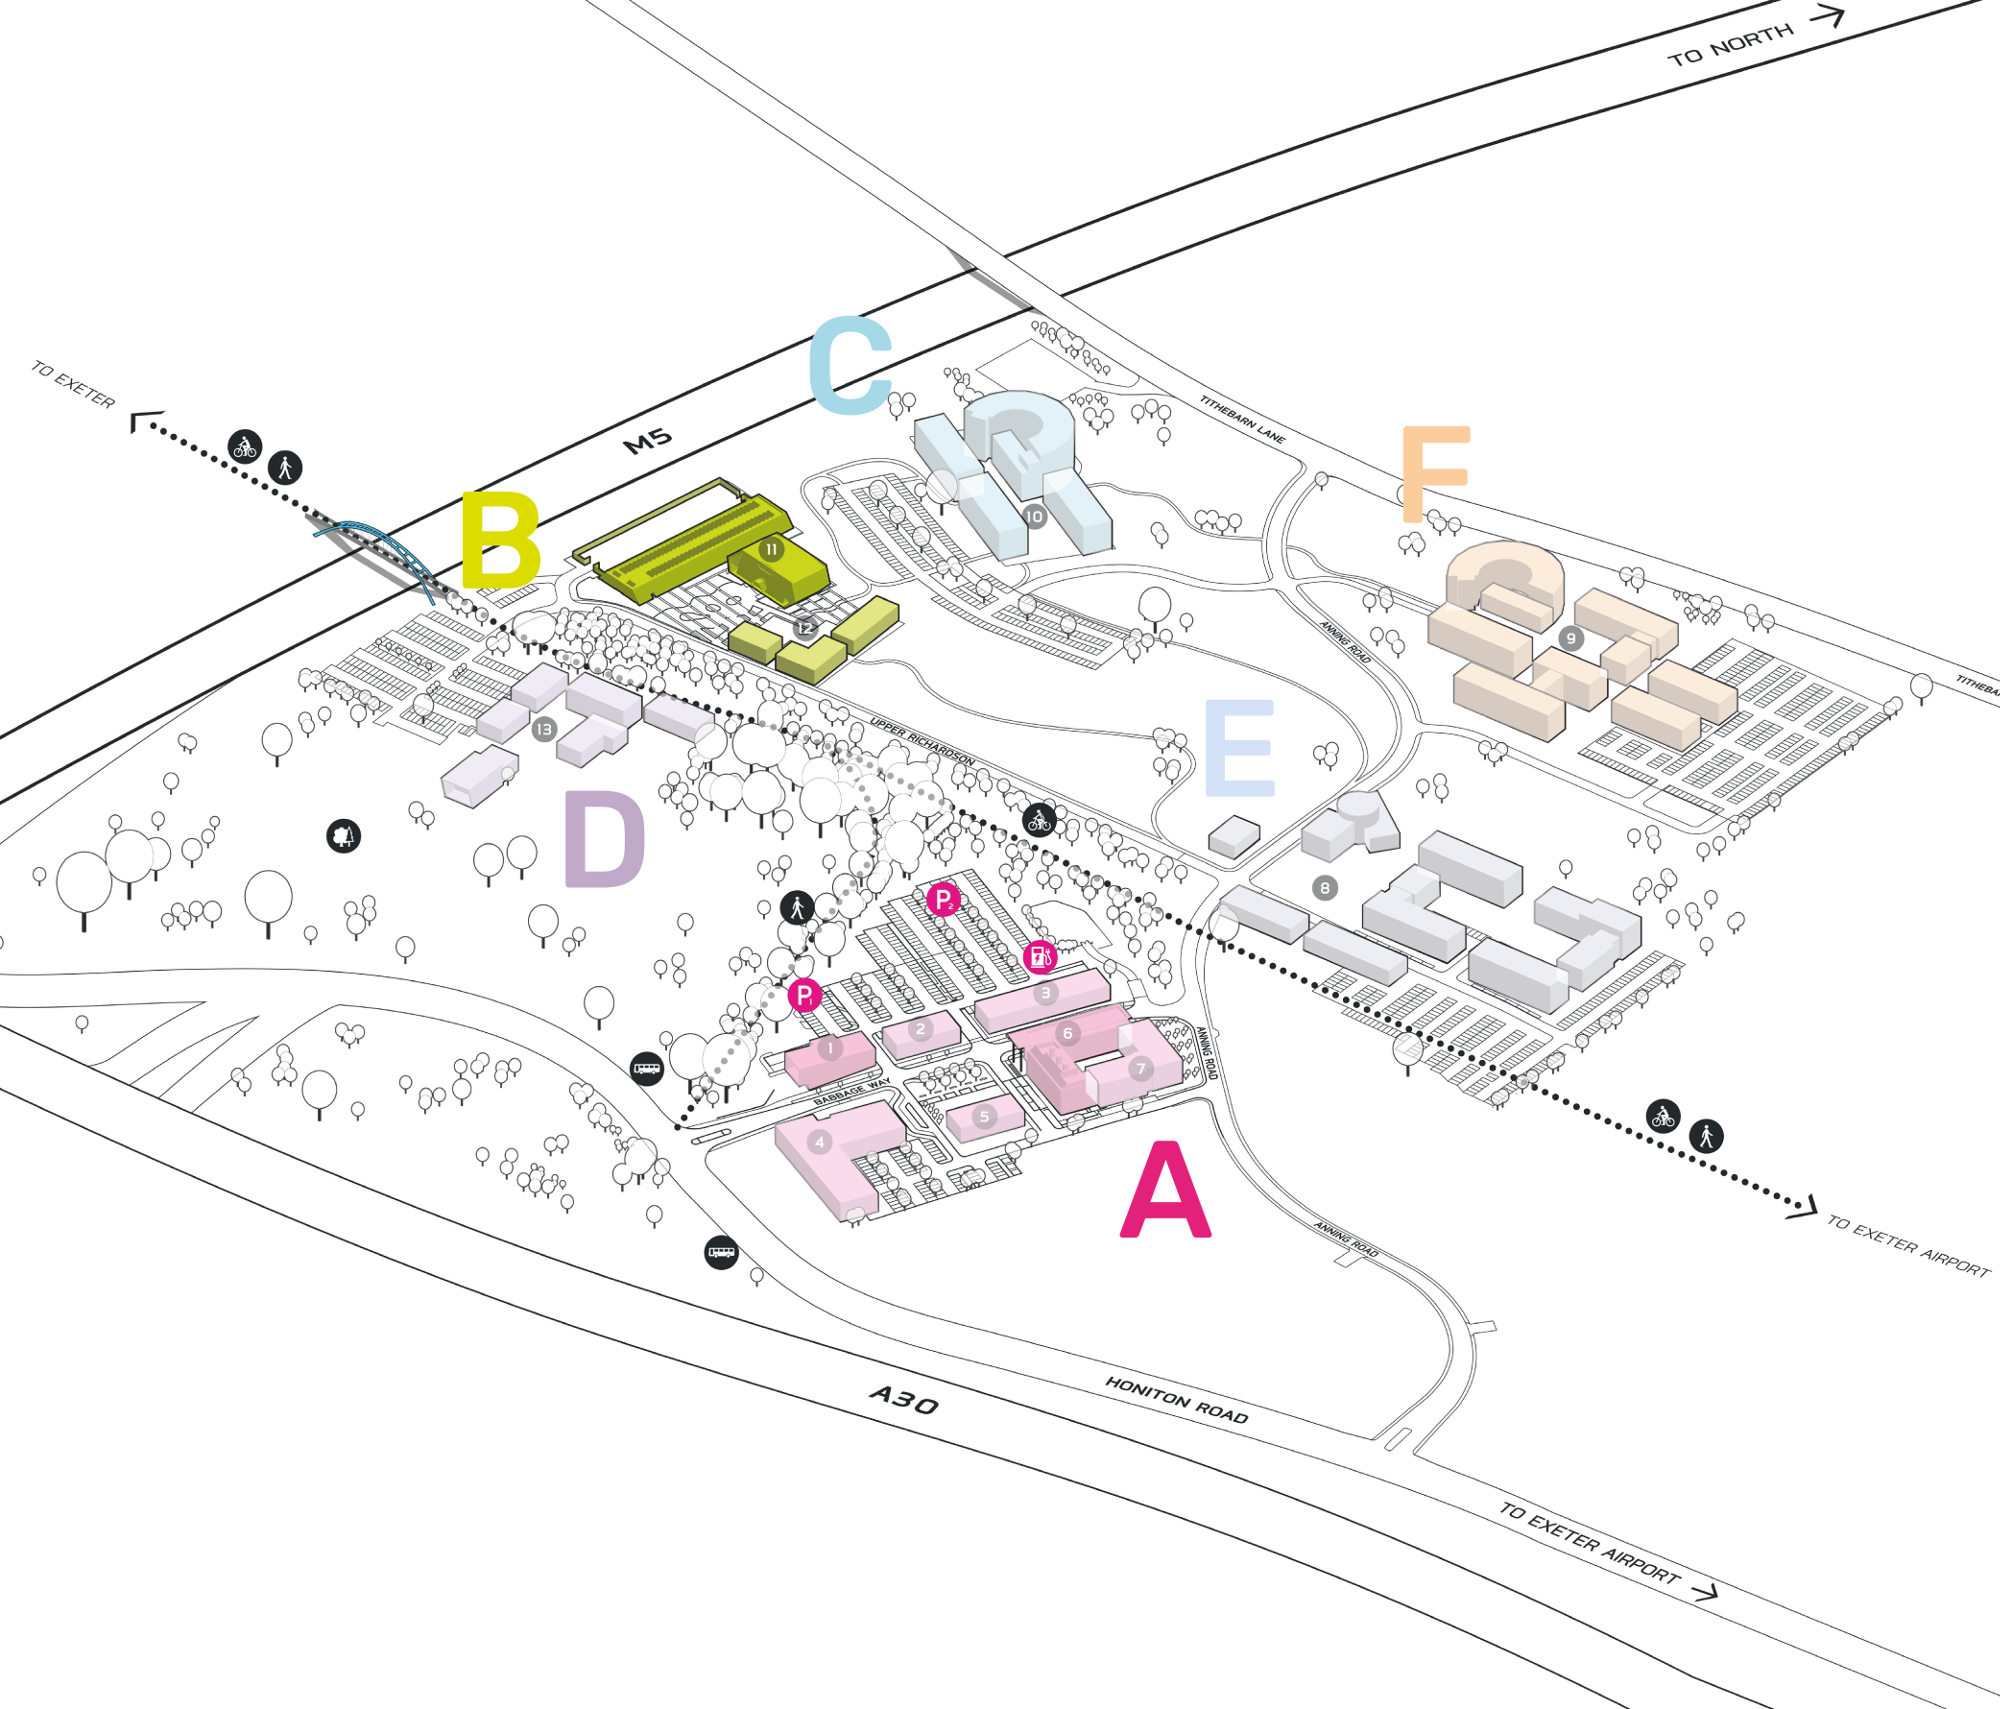 Park Plan highlighting cluster B